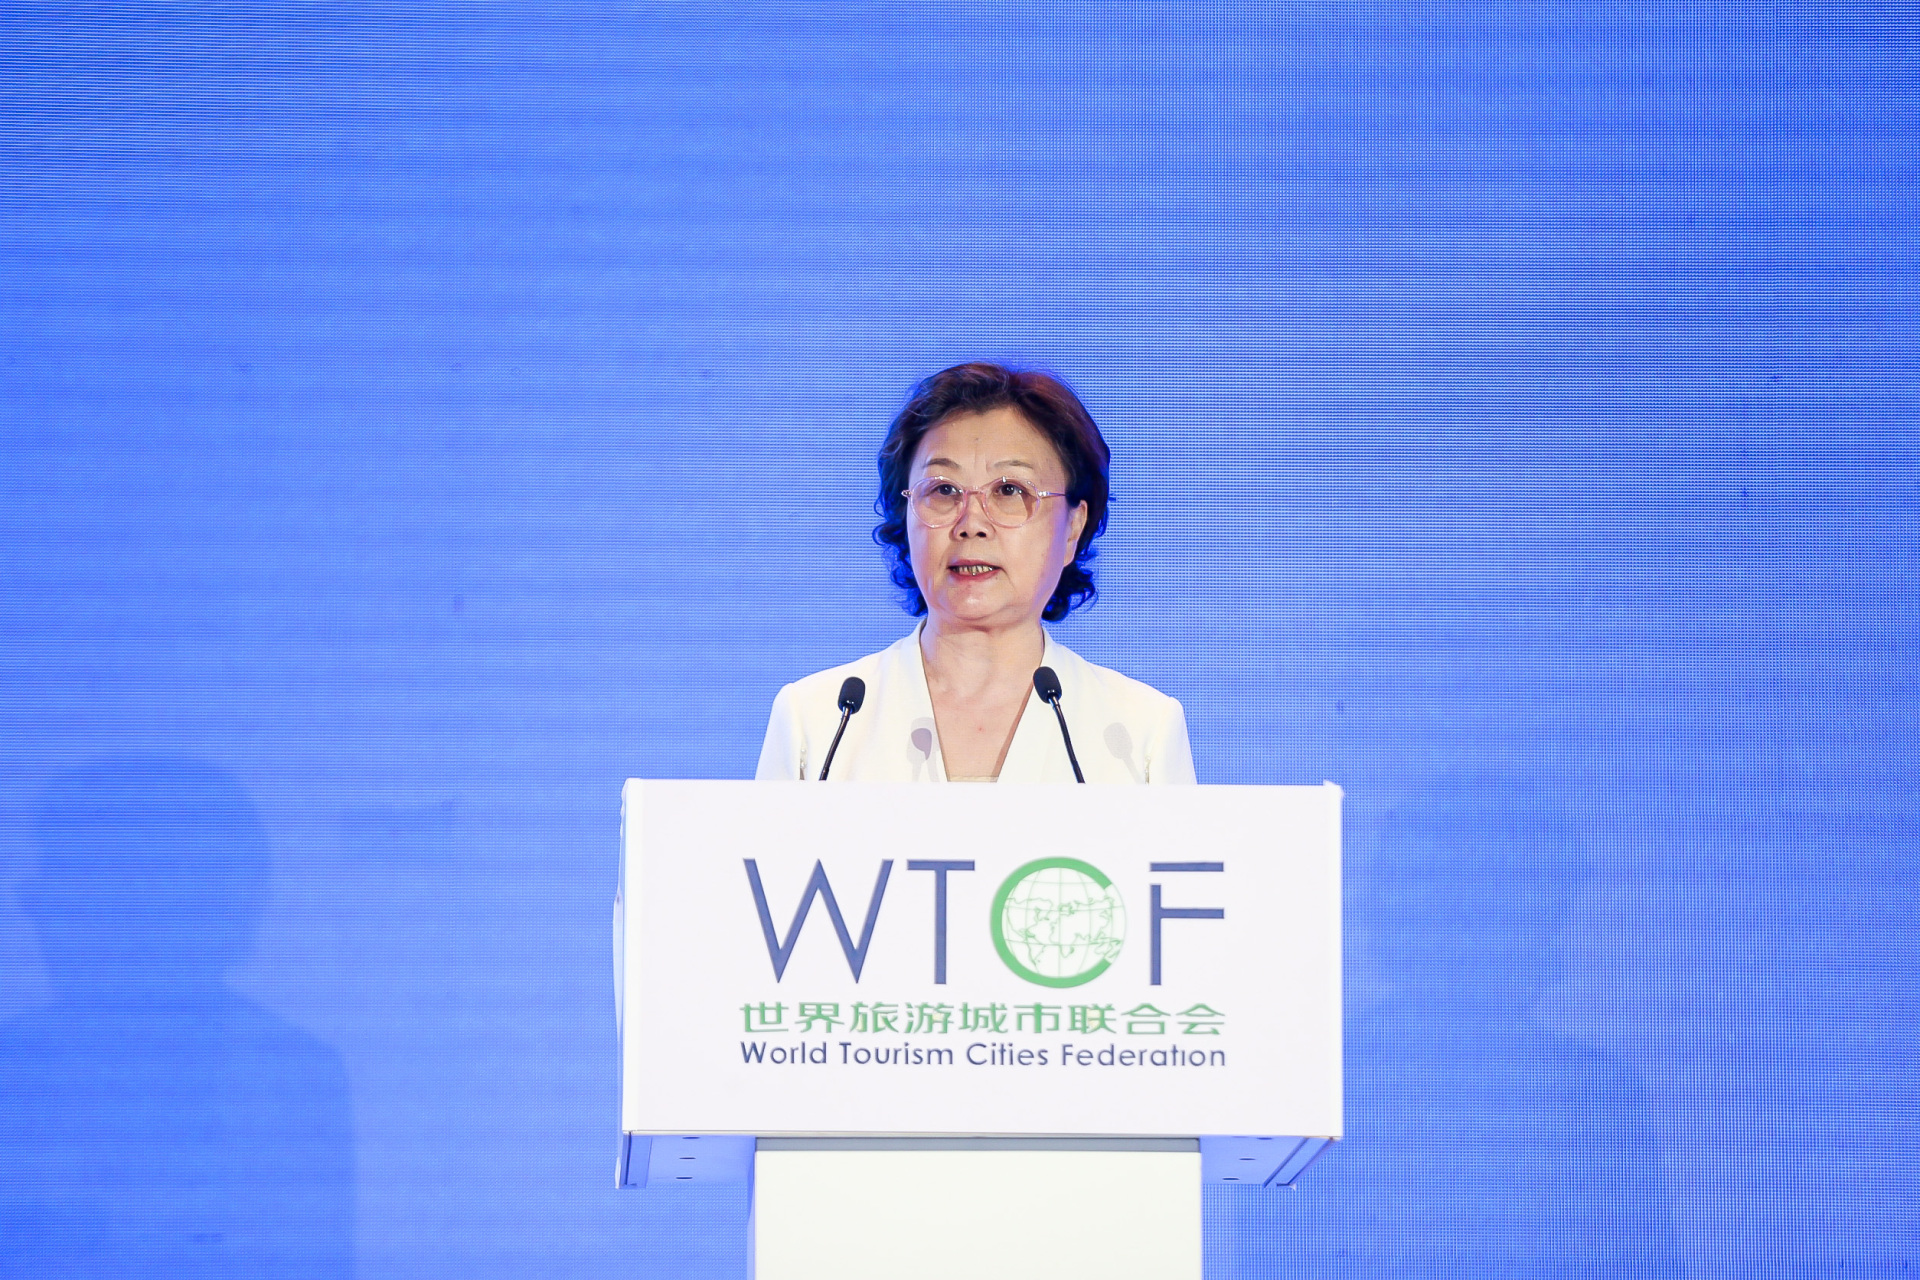 Du Yili, Expert of World Tourism Cities Federation (WTCF), releases Report on Recovery and Development of World Tourism amid COVID-19.